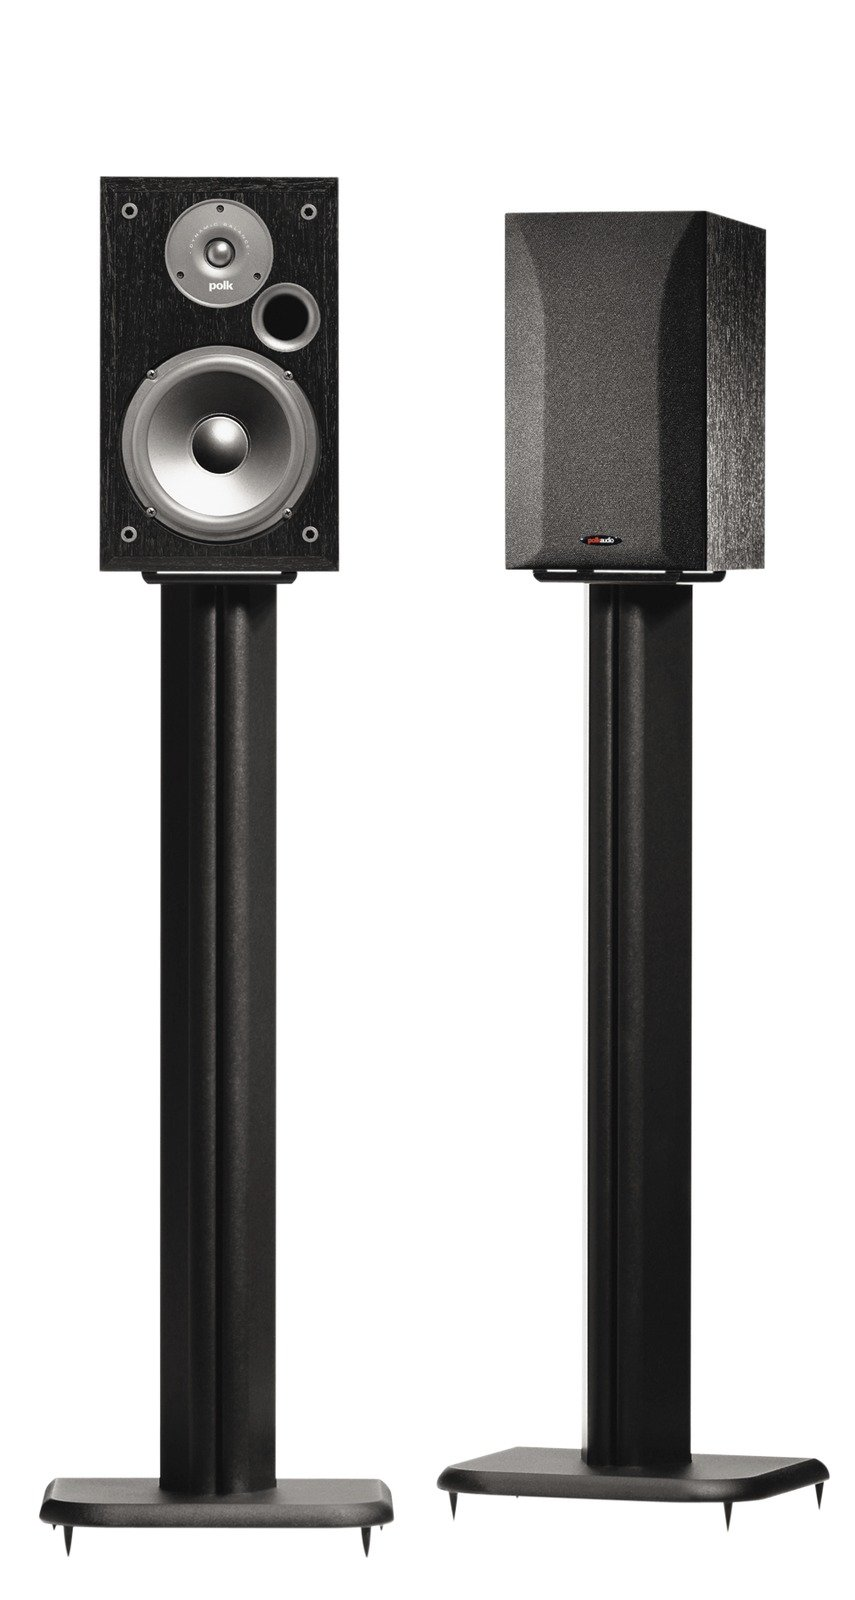 SANUS BF31-B1 31'' Speaker Stands for Bookshelf Speakers up to 20 lbs - Black - Set of 2 by Sanus